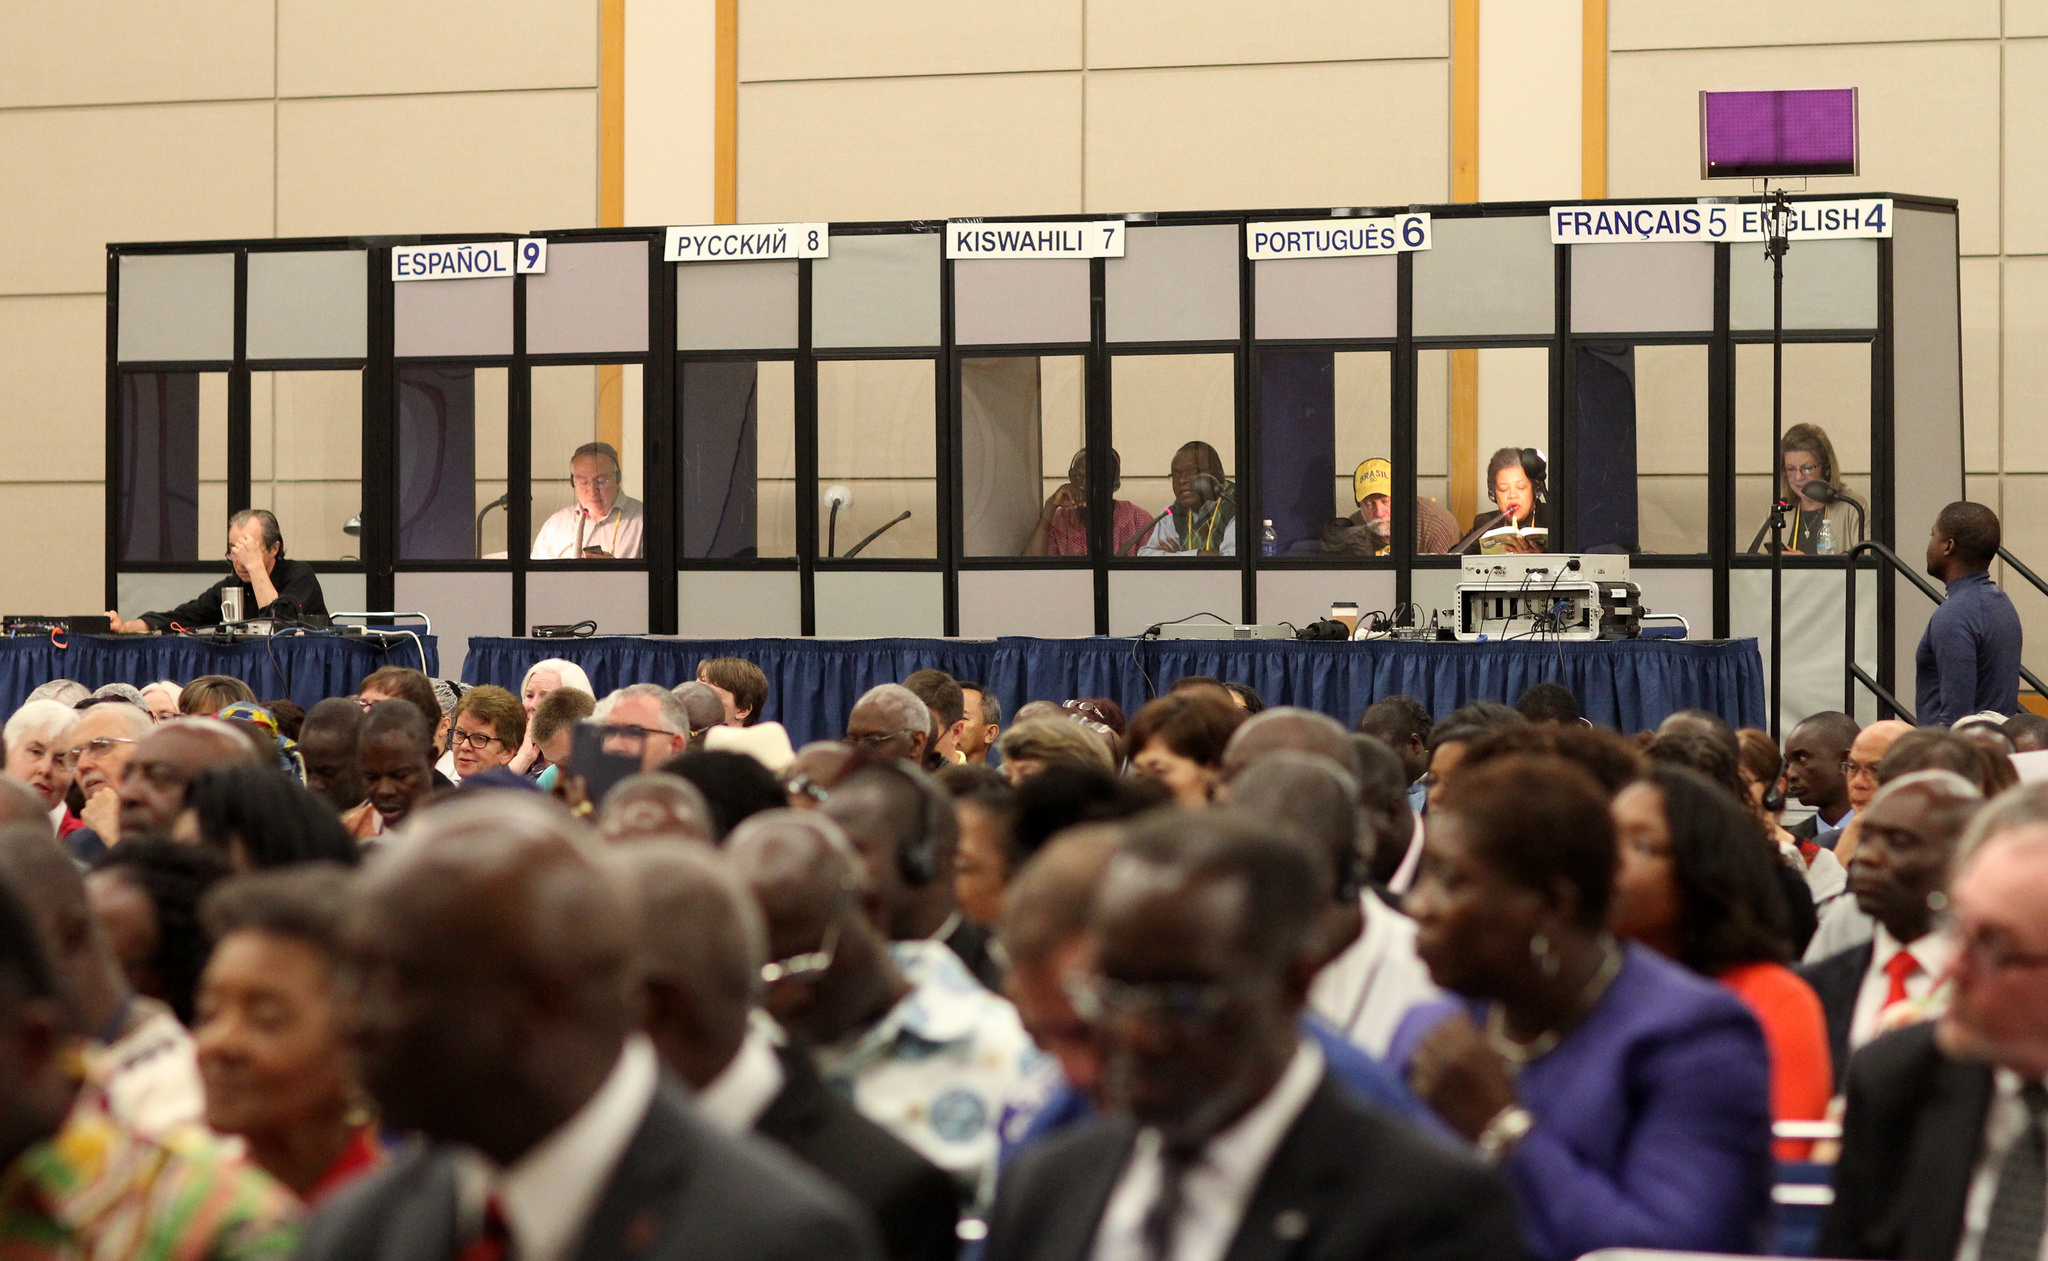 Because delegates traveled from all across the globe to participate in General Conference, translation services are vital.  Photo credit: Kathleen Barry, UMNS